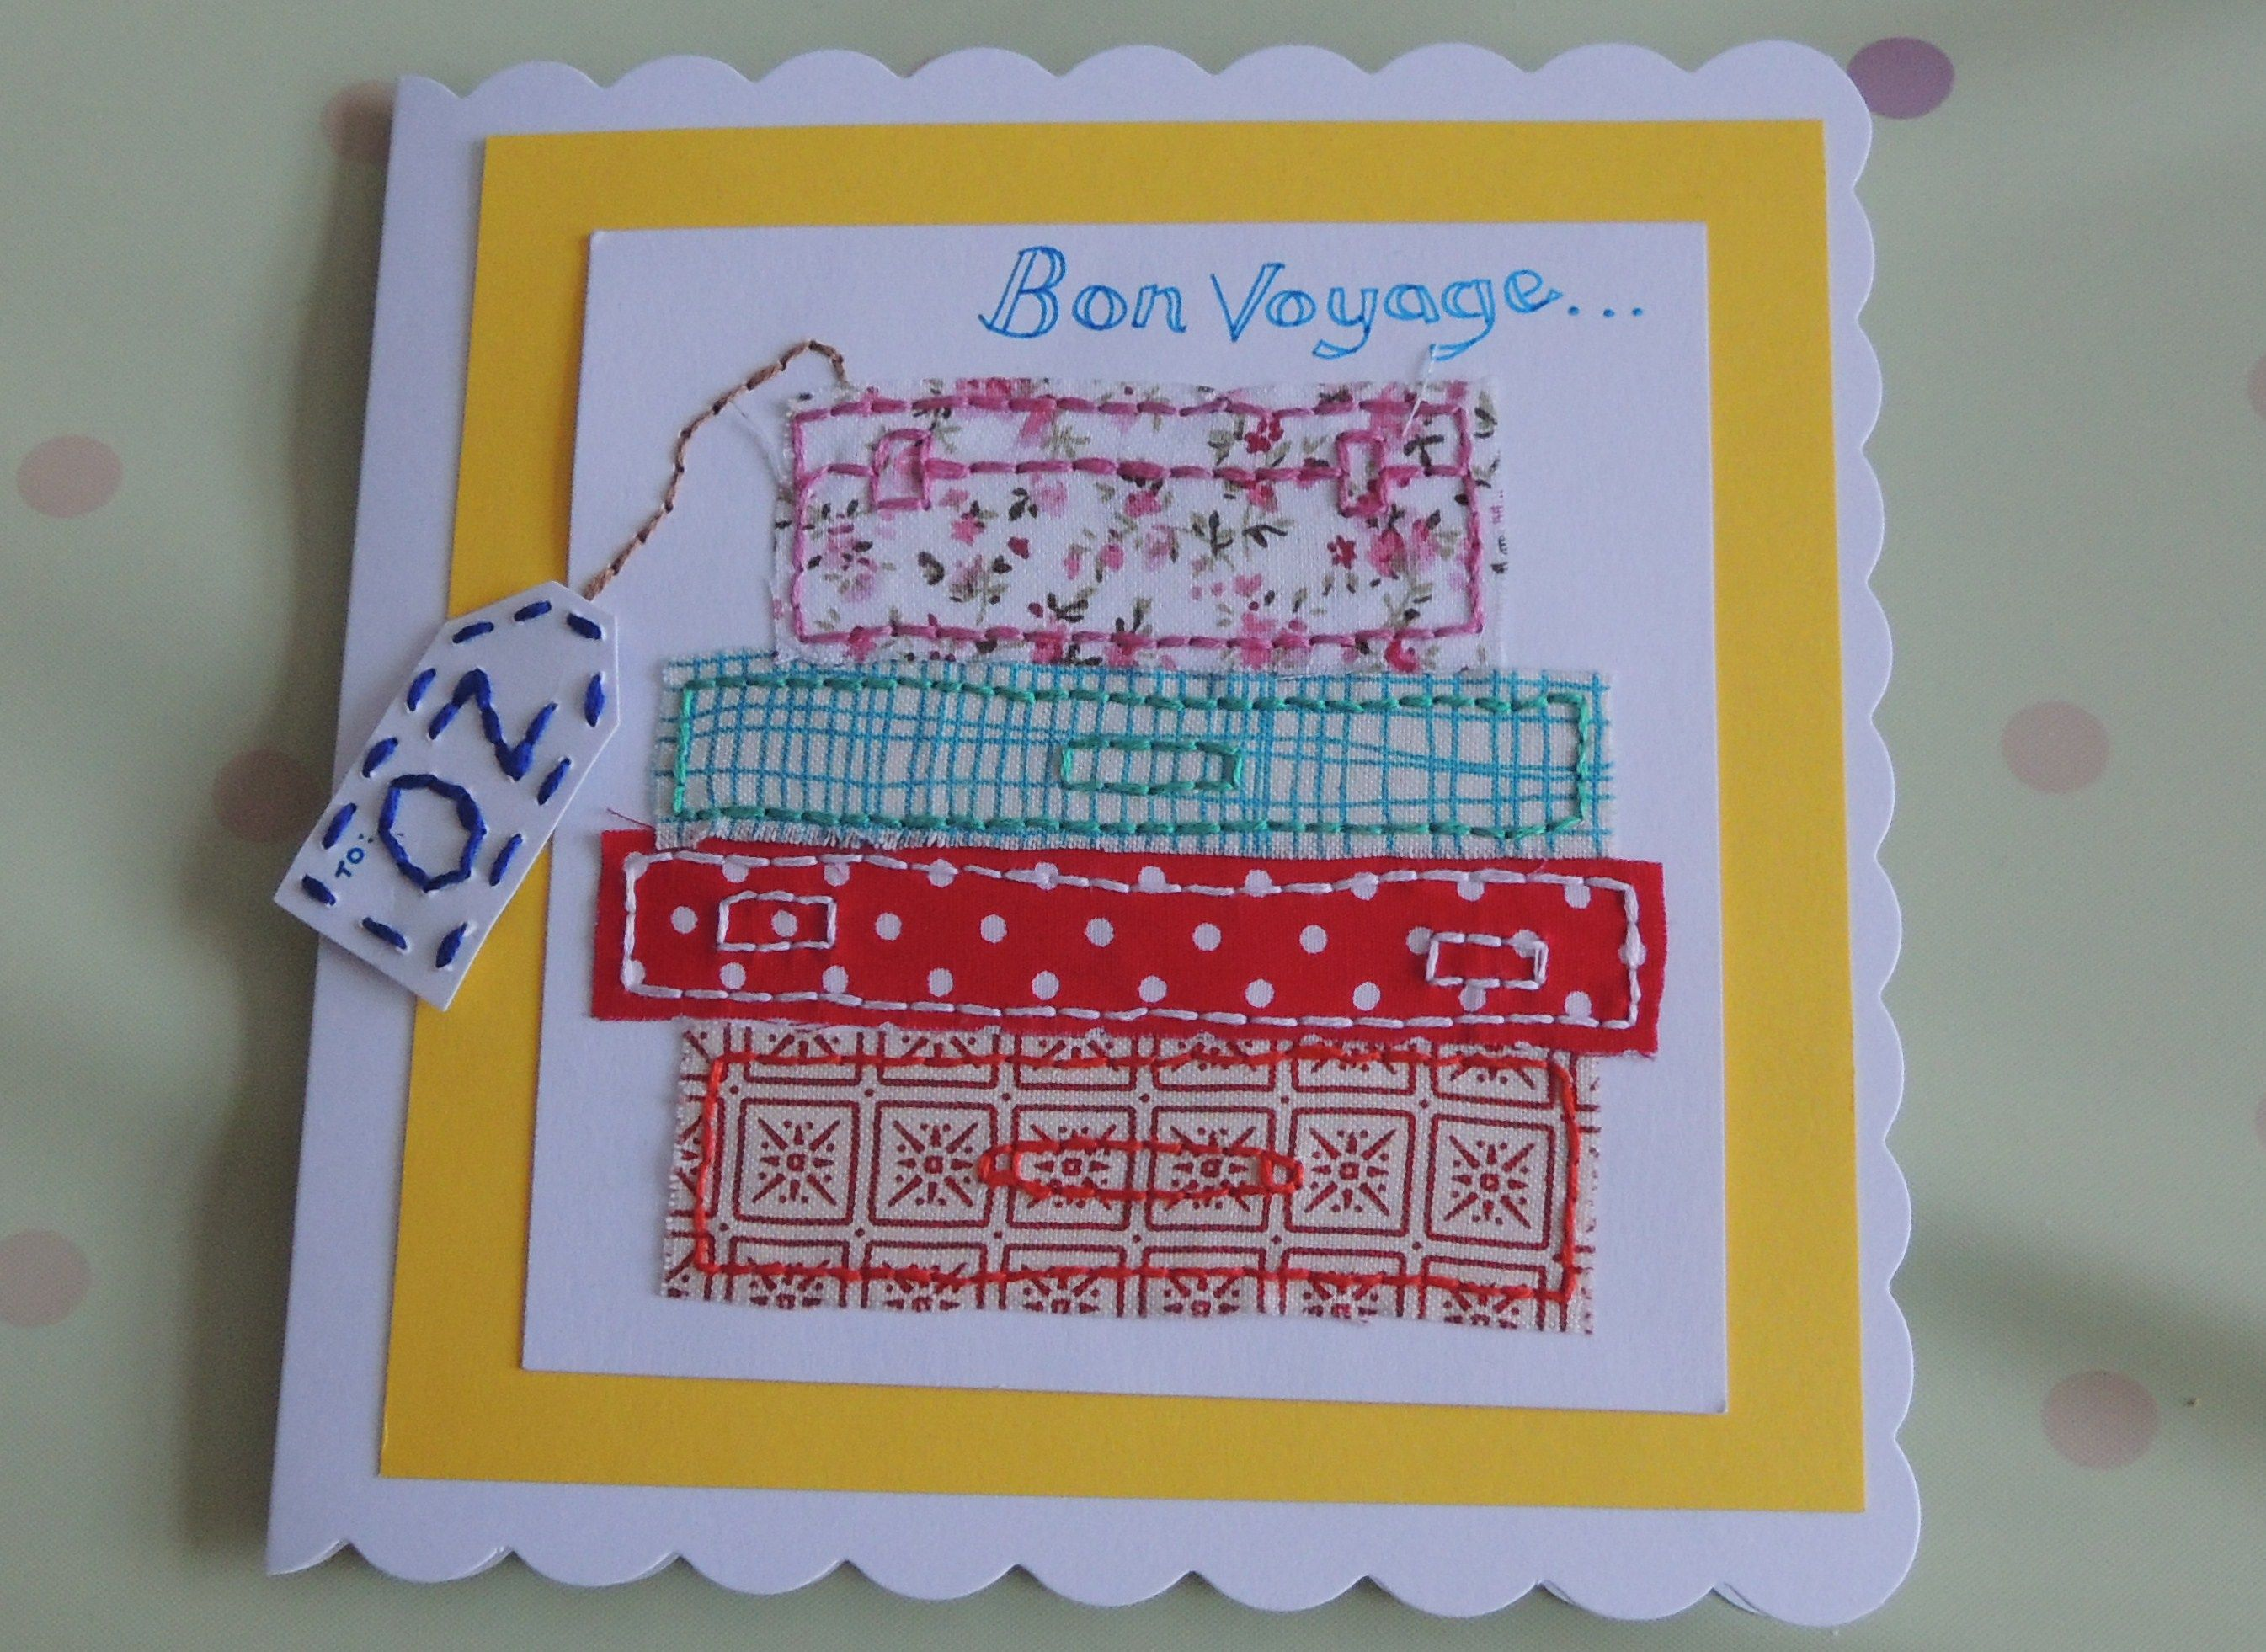 A Bon Voyage card- sewing fabric on cards is my new favourite thing to do... Therapeutic although I could use a thimble :s